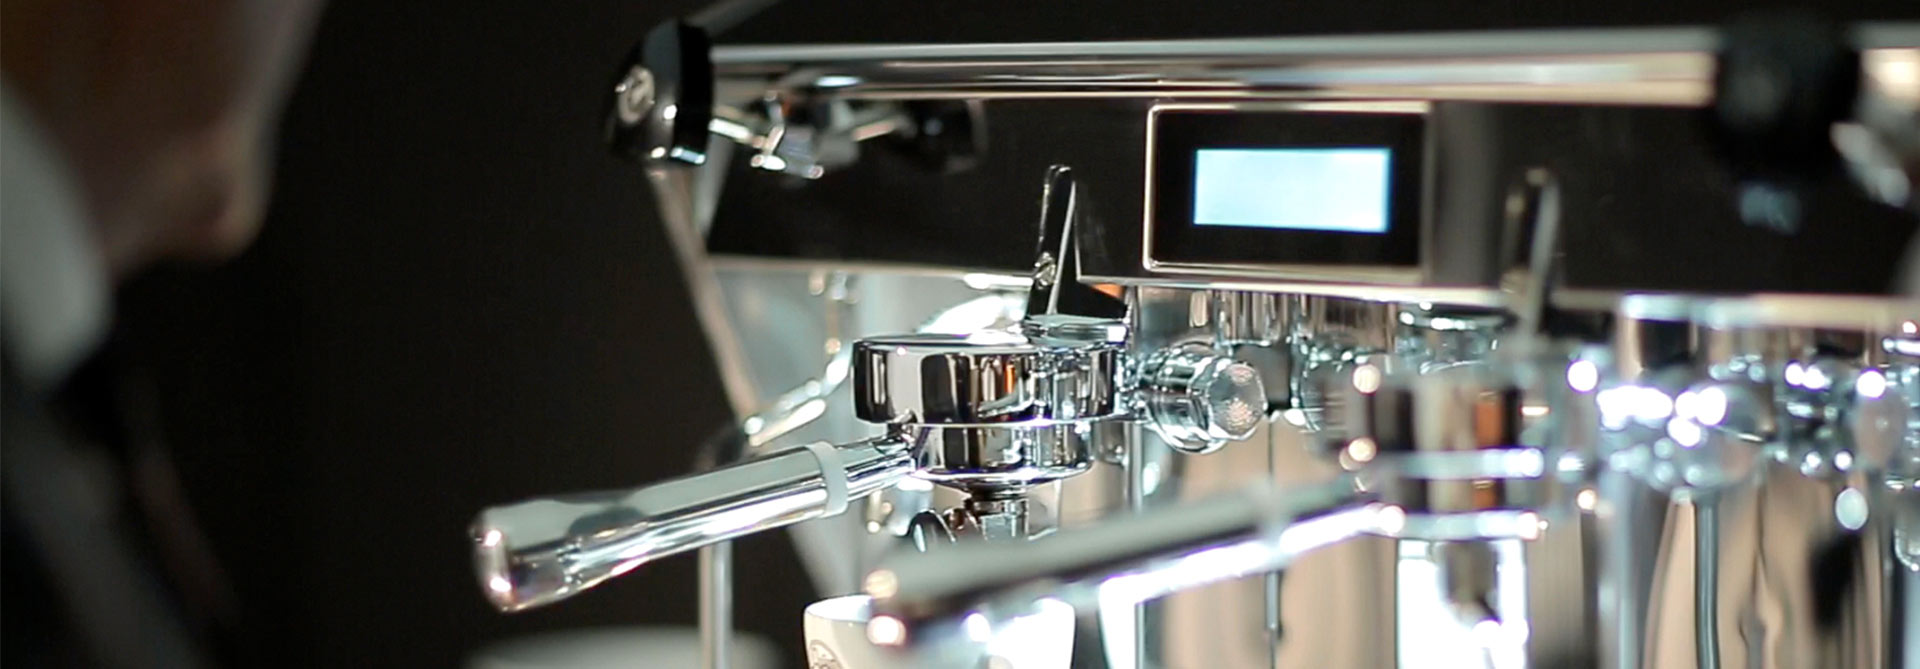 Etnica-Display-2-groups-E61-professional-Orchestrale-coffee-machine-07